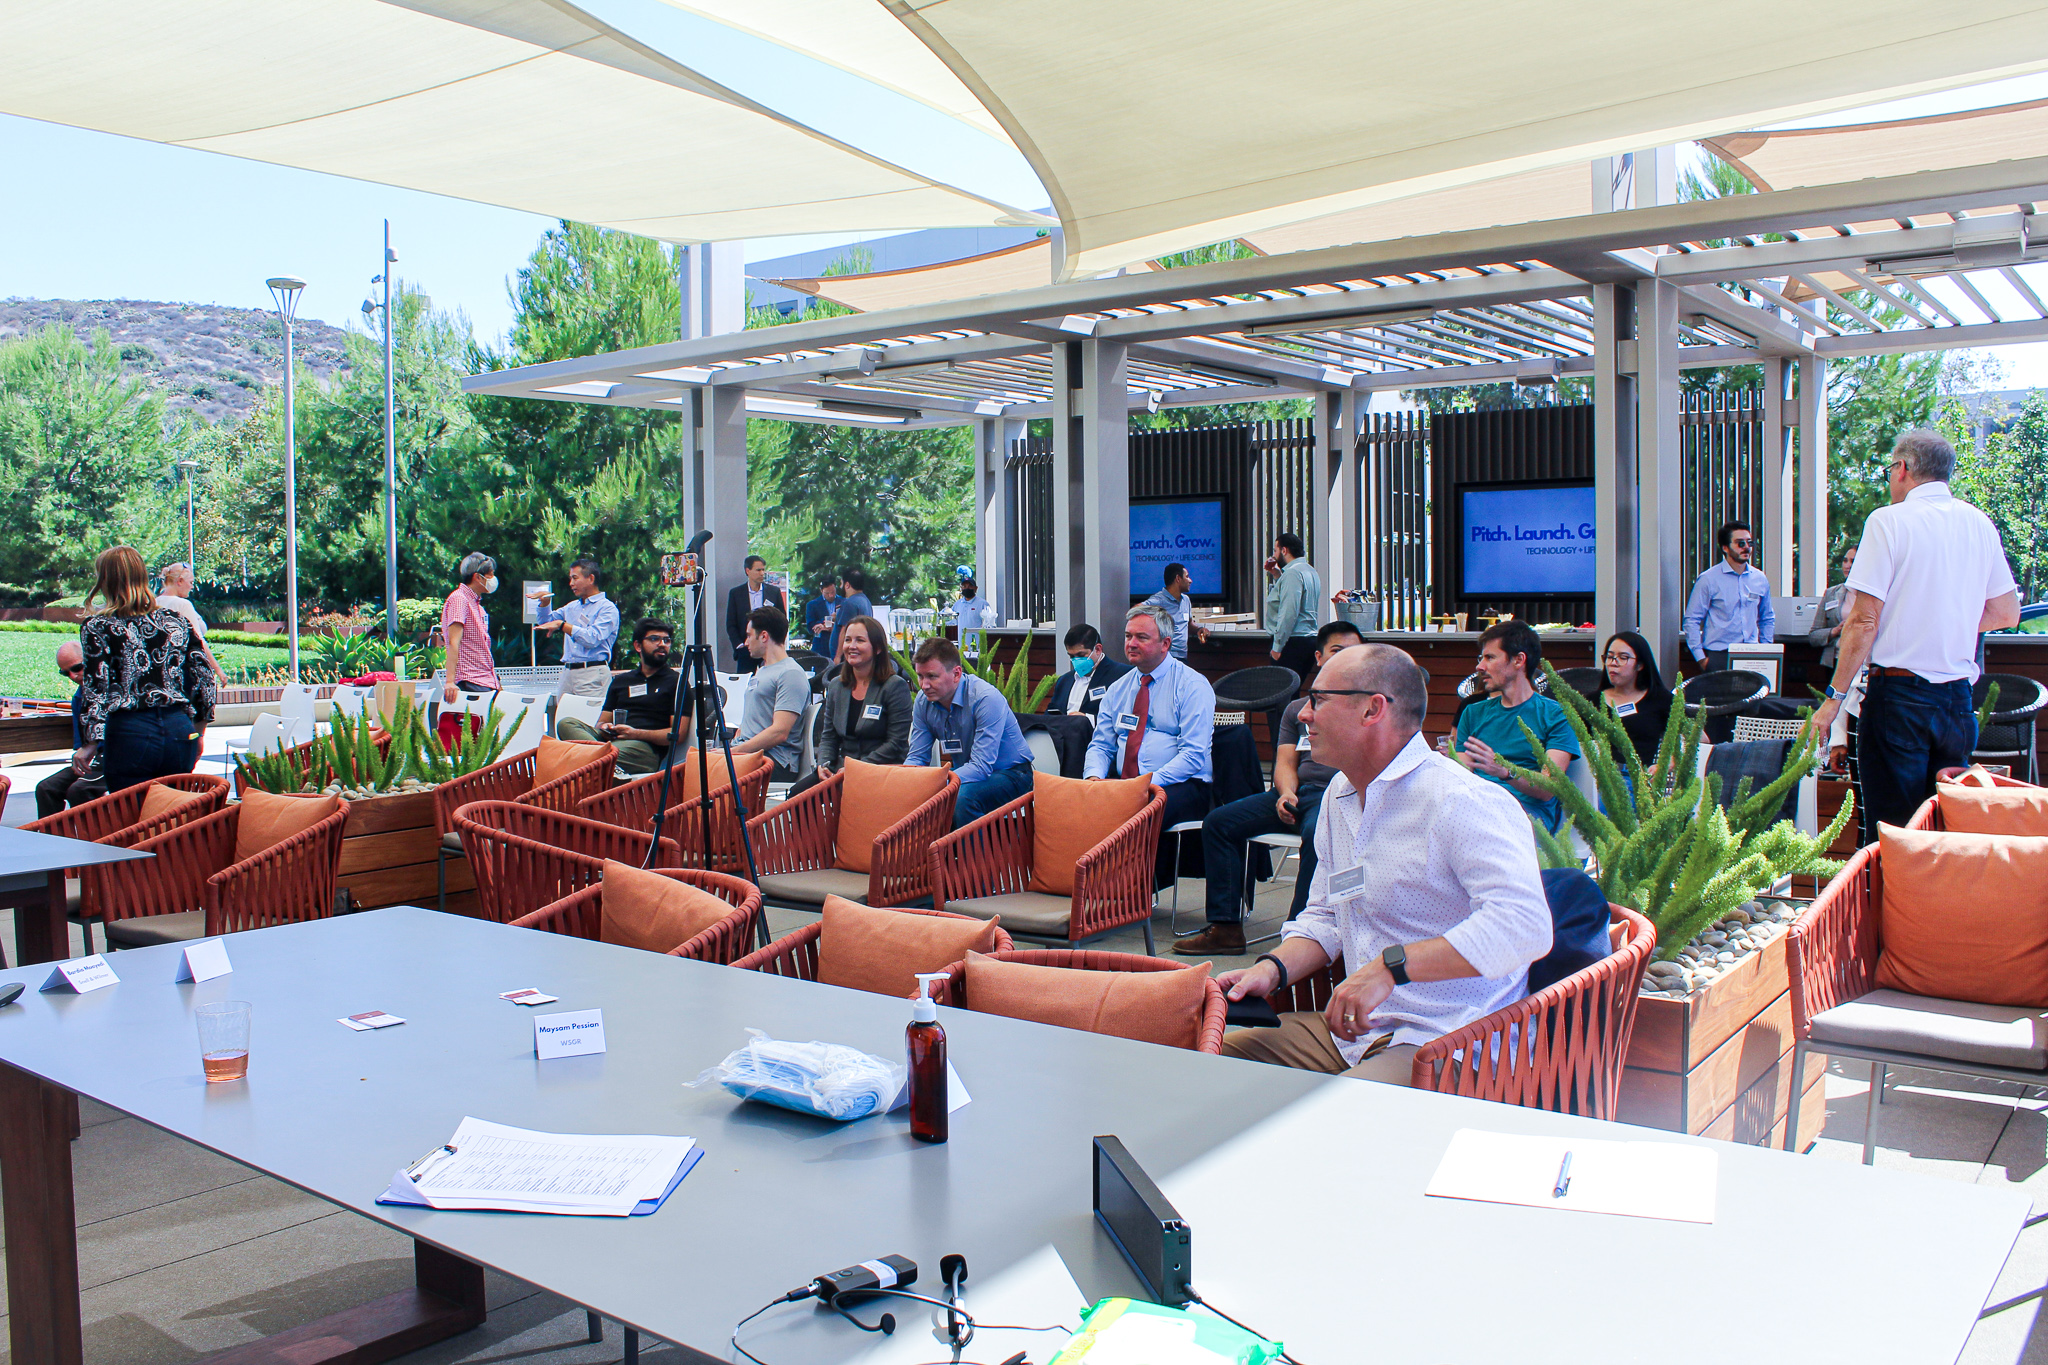 Syntr Health Technologies, Triton Biodevices, and TransSiP win Orange County's Inaugural Pitch Competition, Pitch. Launch. Grow.